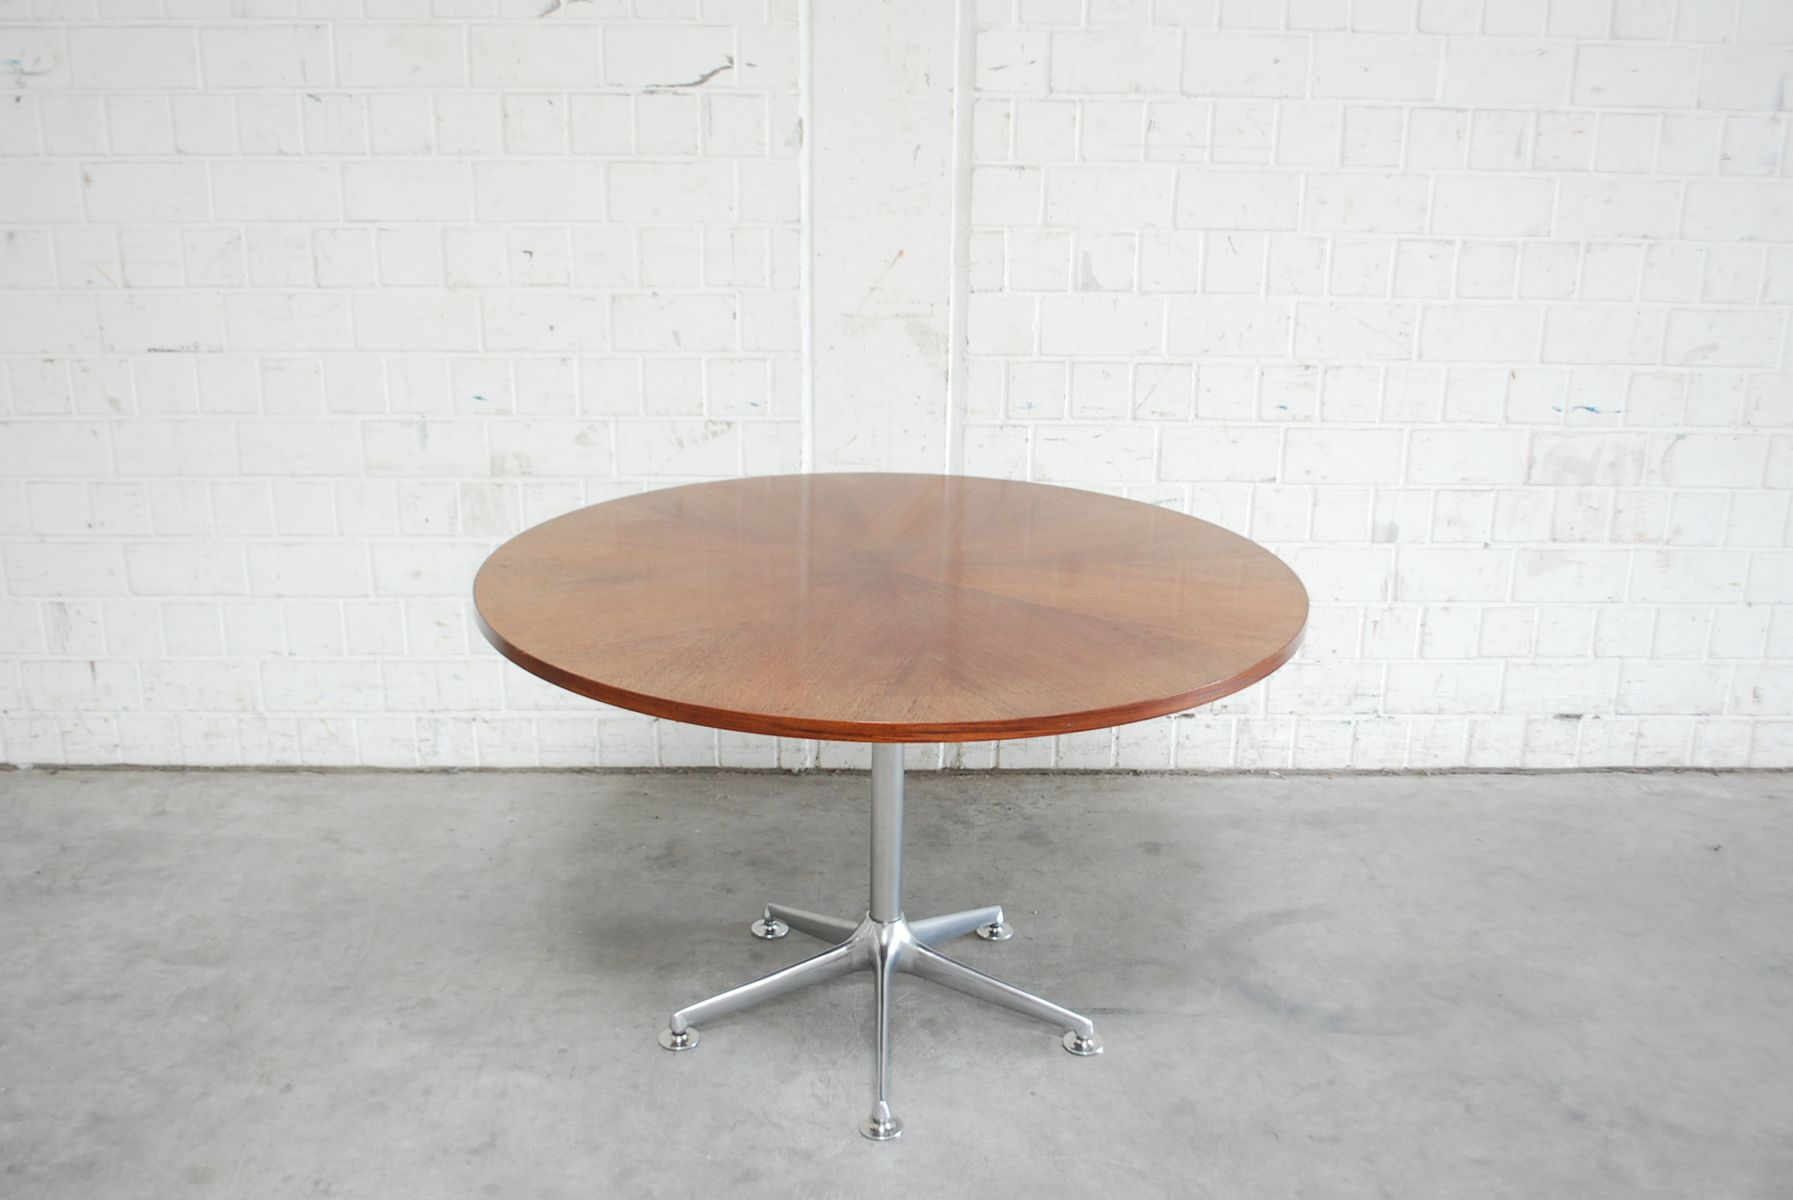 Mid century dining table - Mid Century Dining Table By Ico Parisi For Mim